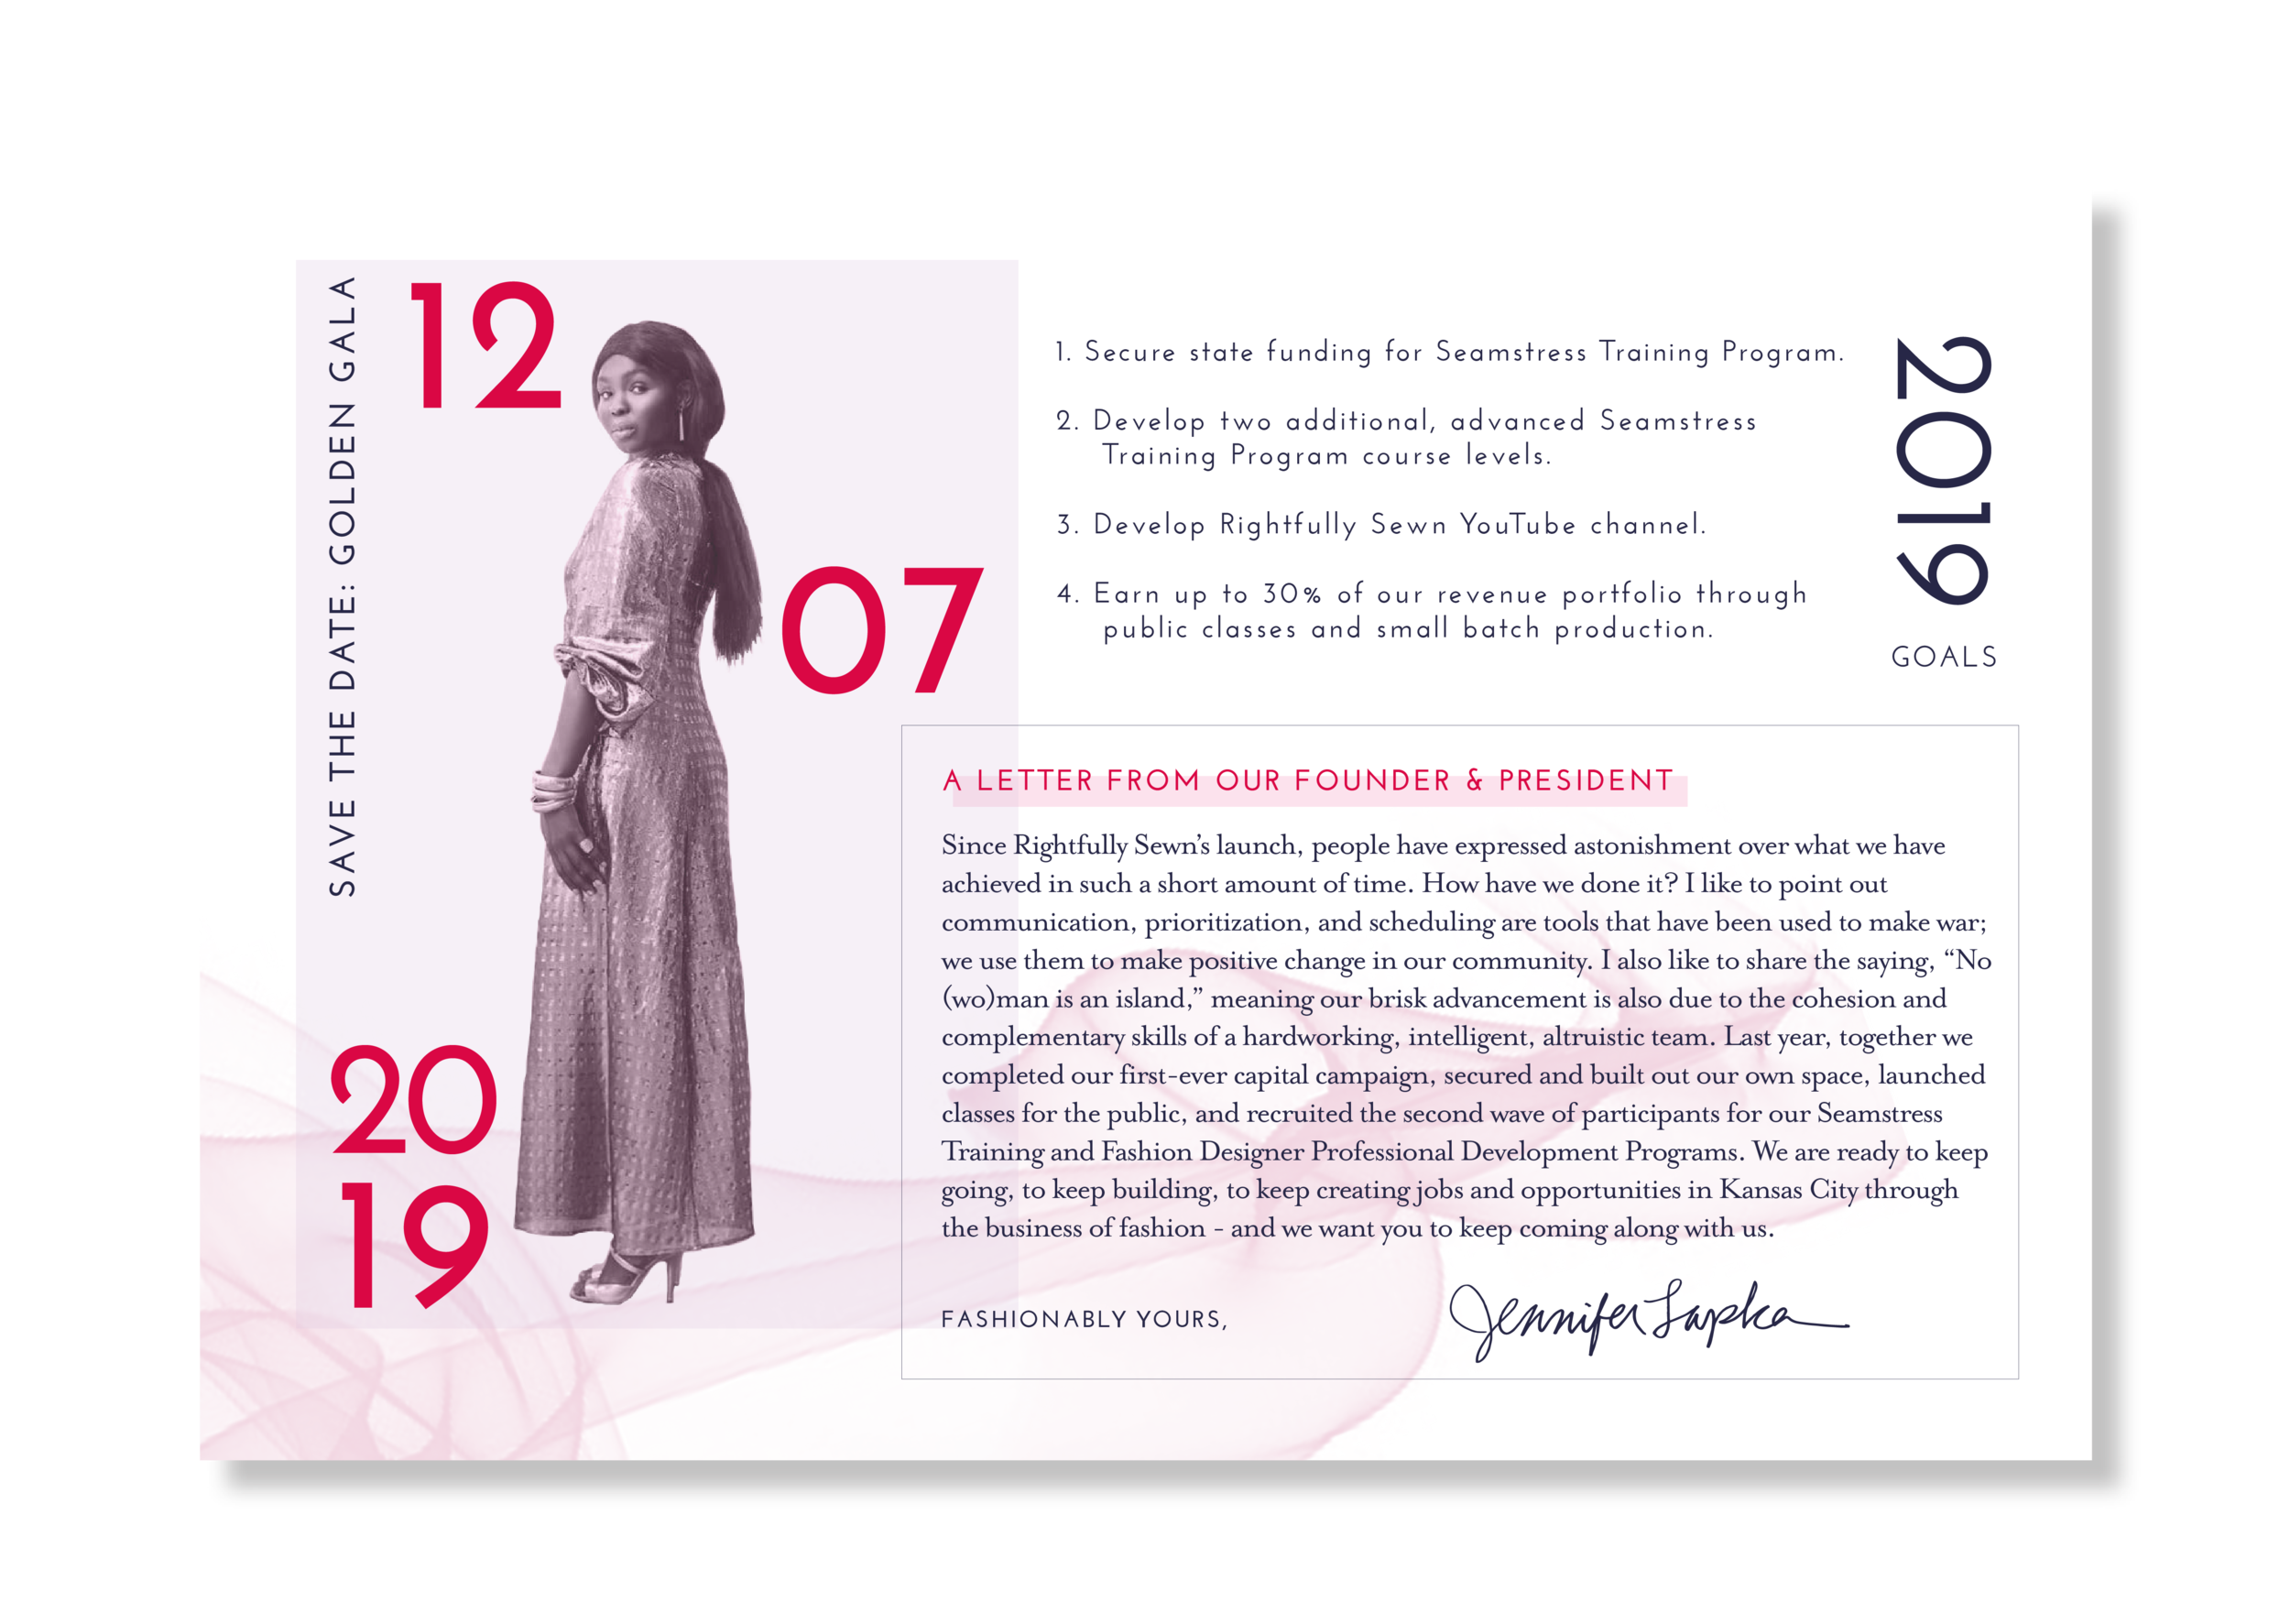 2018 ANNUAL REPORT INSPIRED BY THE SUCCESS OF THE ATELIER CAMPAIGN